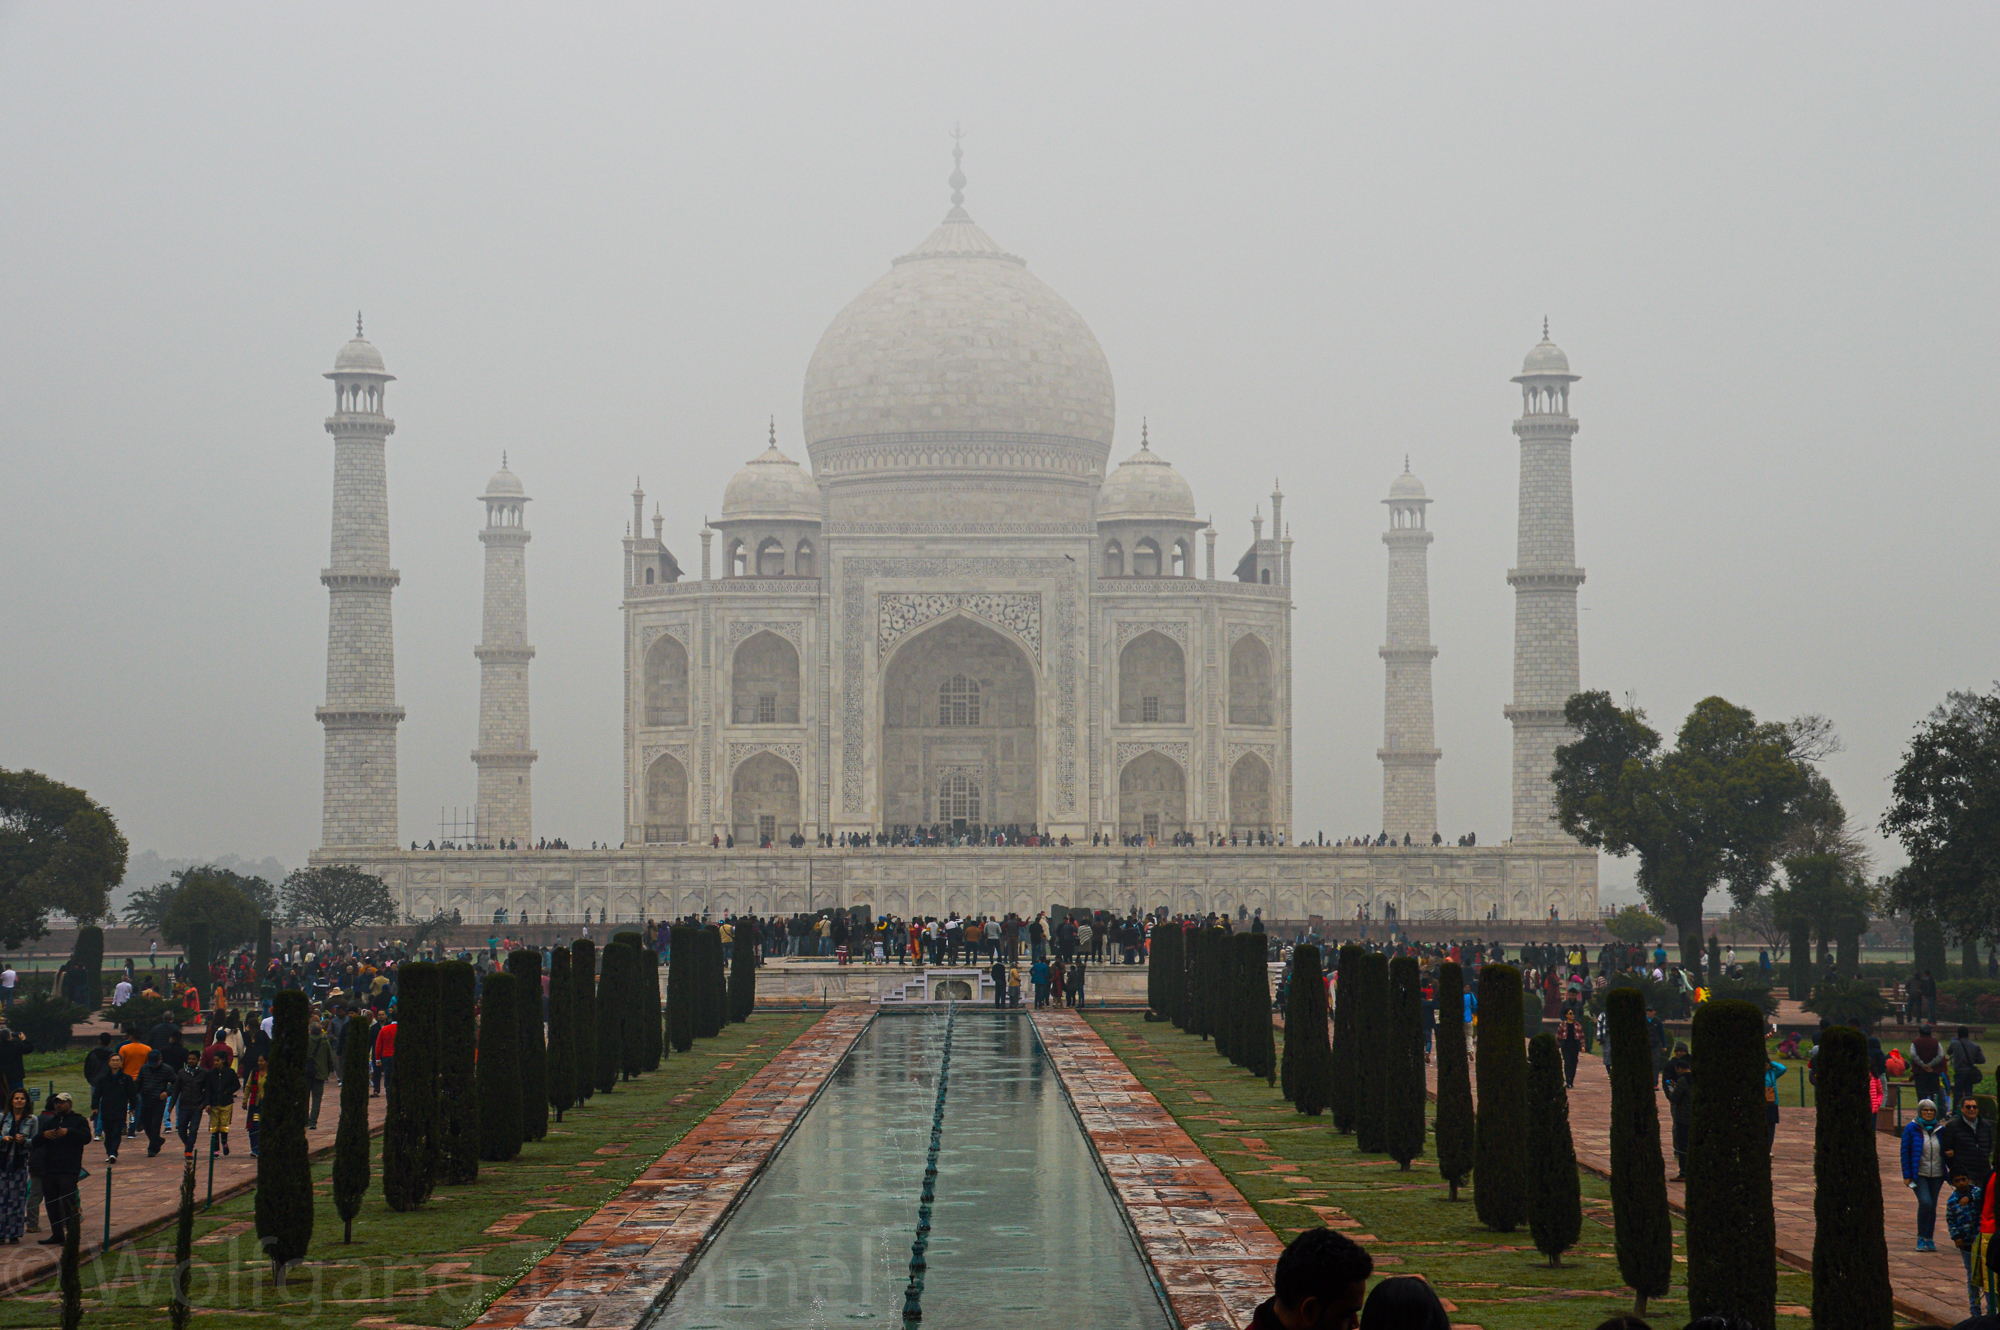 My travels to India